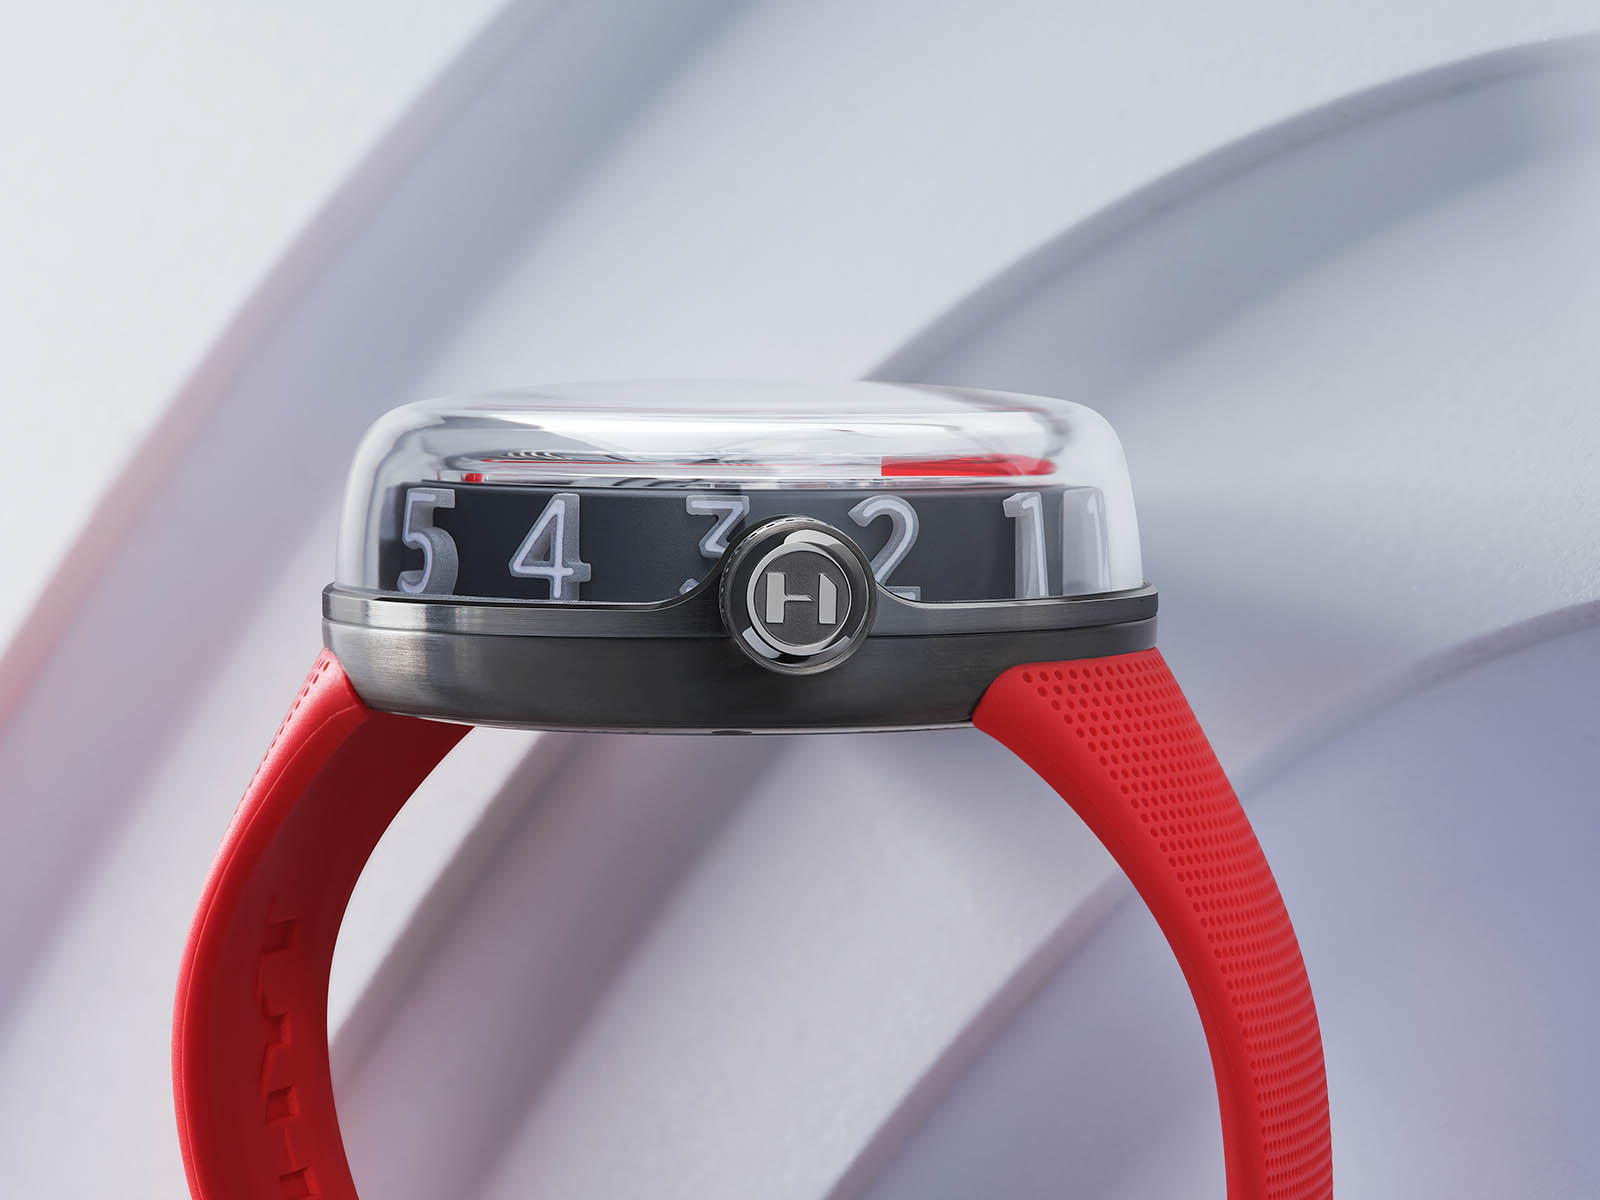 h02248-hyt-h5-red-limited-edition-7.jpg